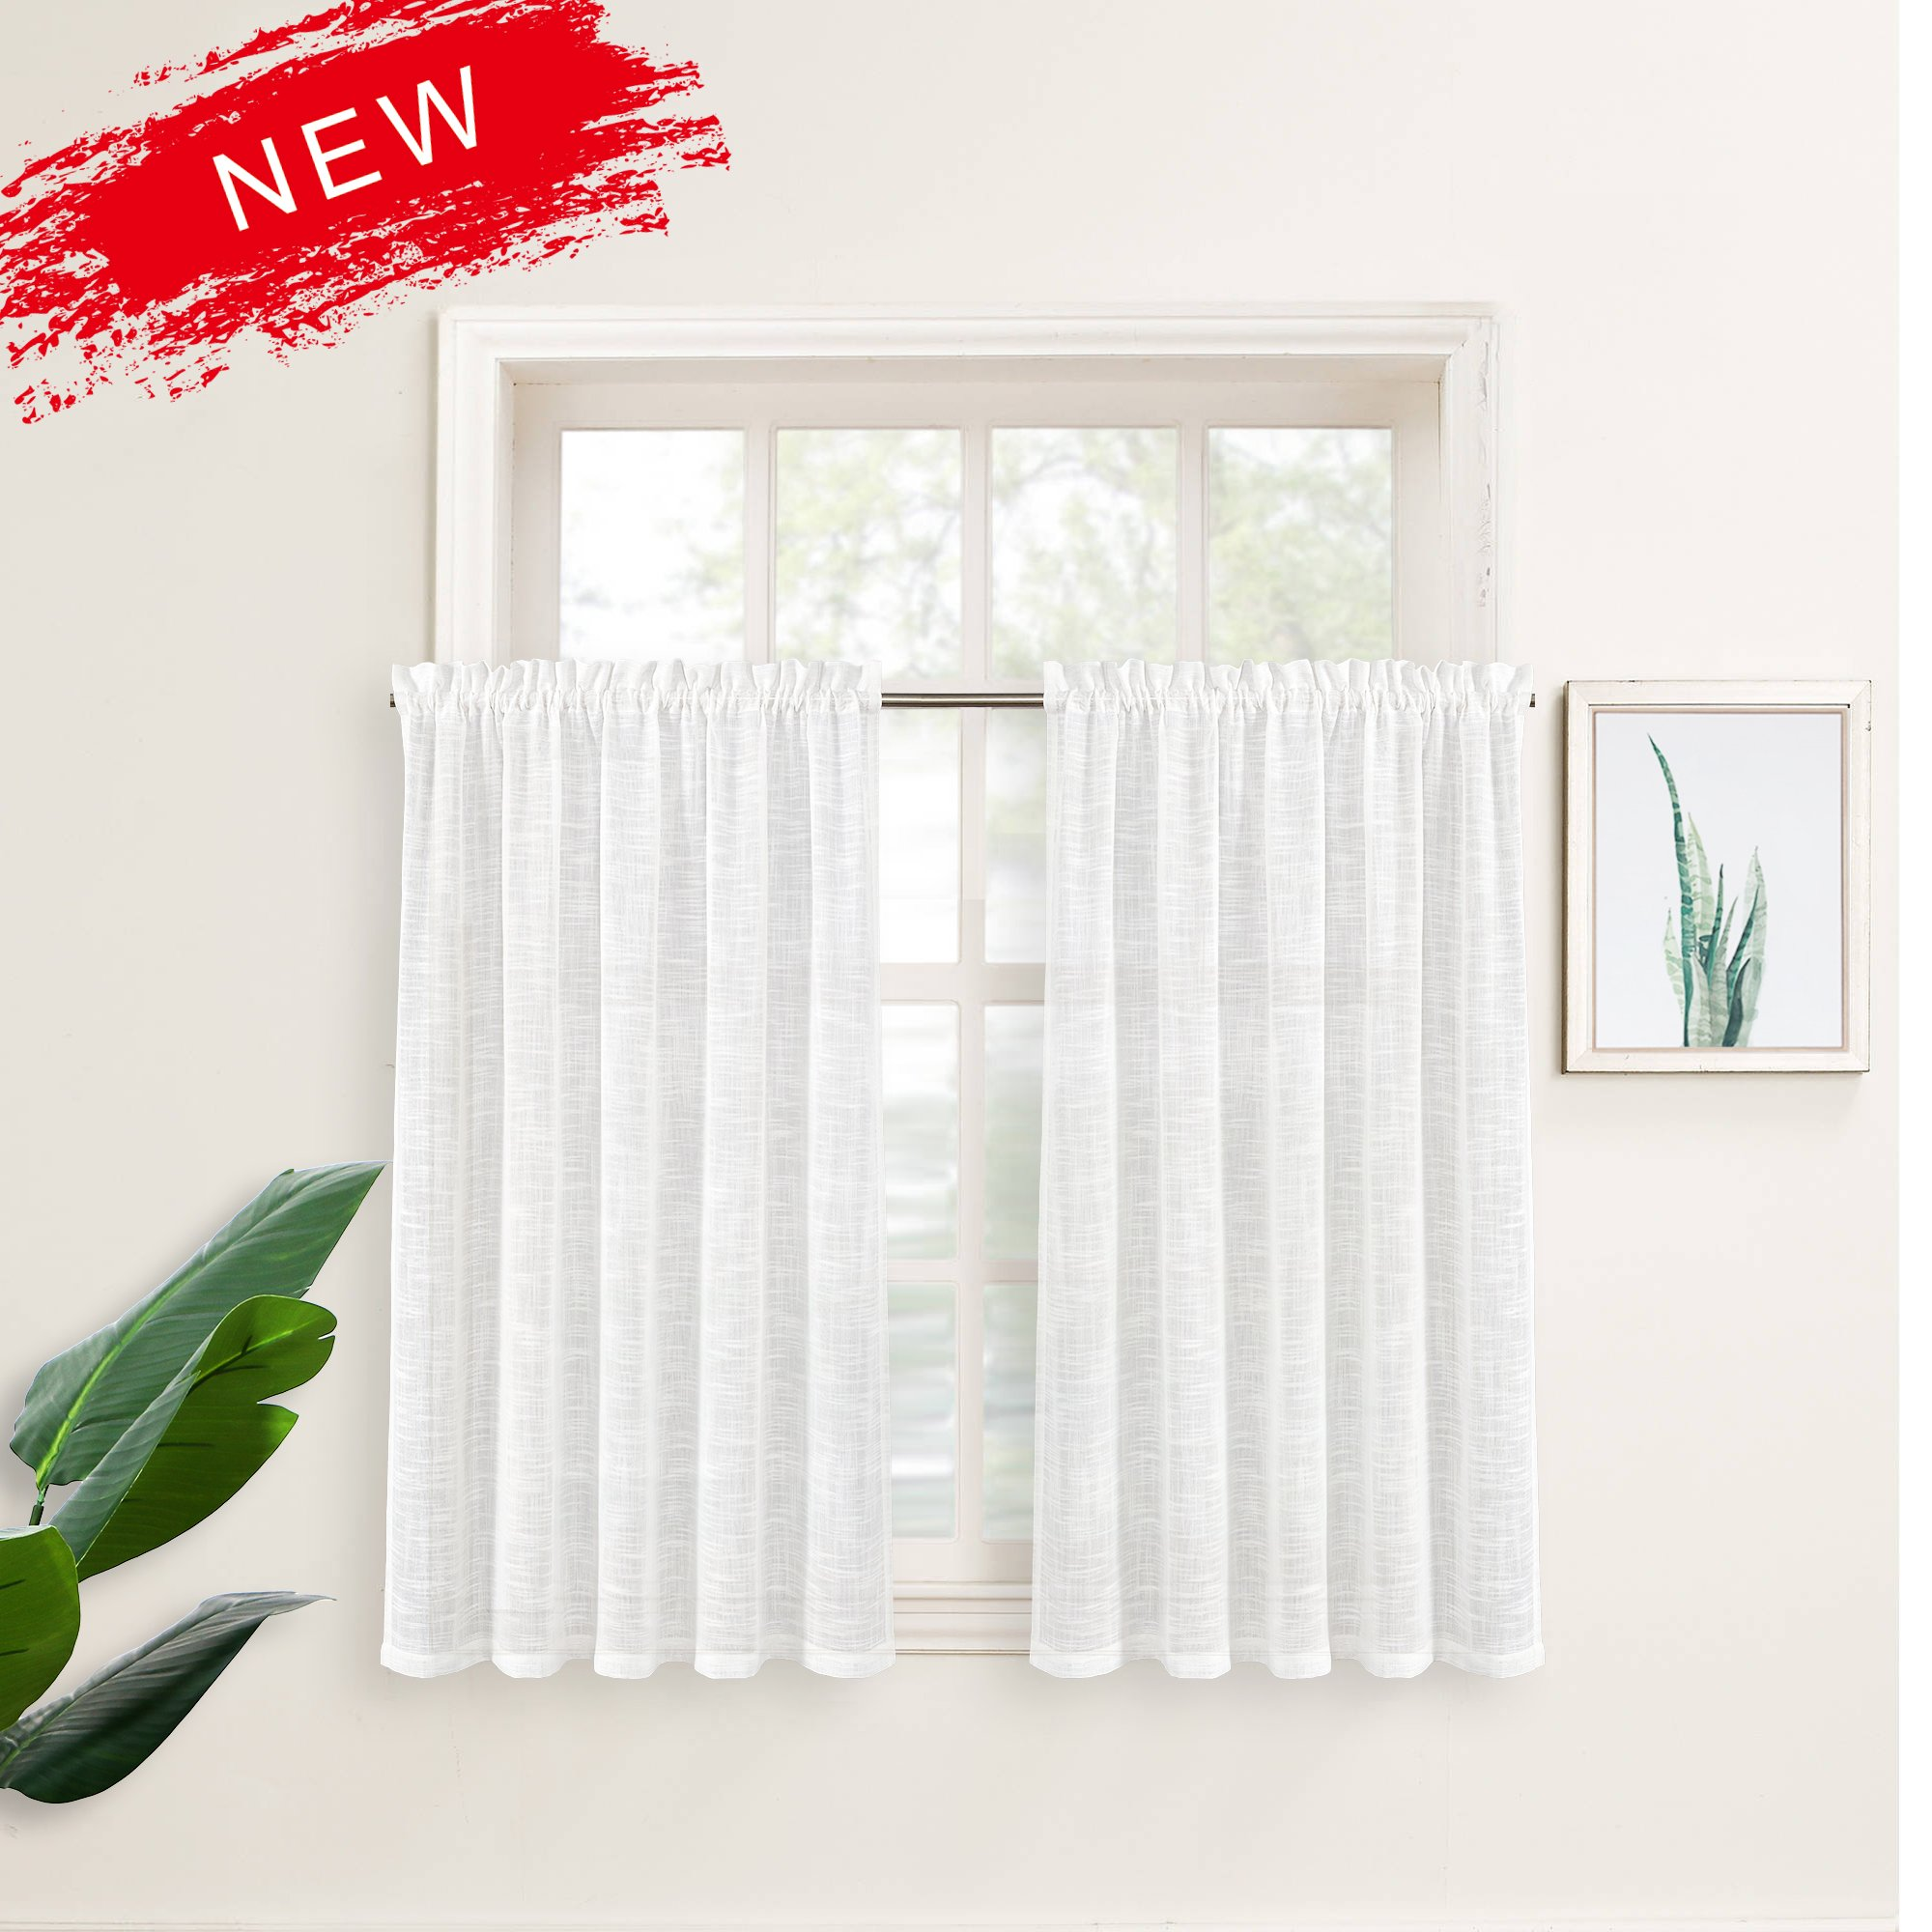 Zceconce Off White Bedroom Window Curtain Set Linen Semi Sheer Curtains Privacy Textured for Bedroom 45 Inch Long for Hotel Dining Room Total Size 120 Inch Wide (60''×45'', White, 2 Pieces)